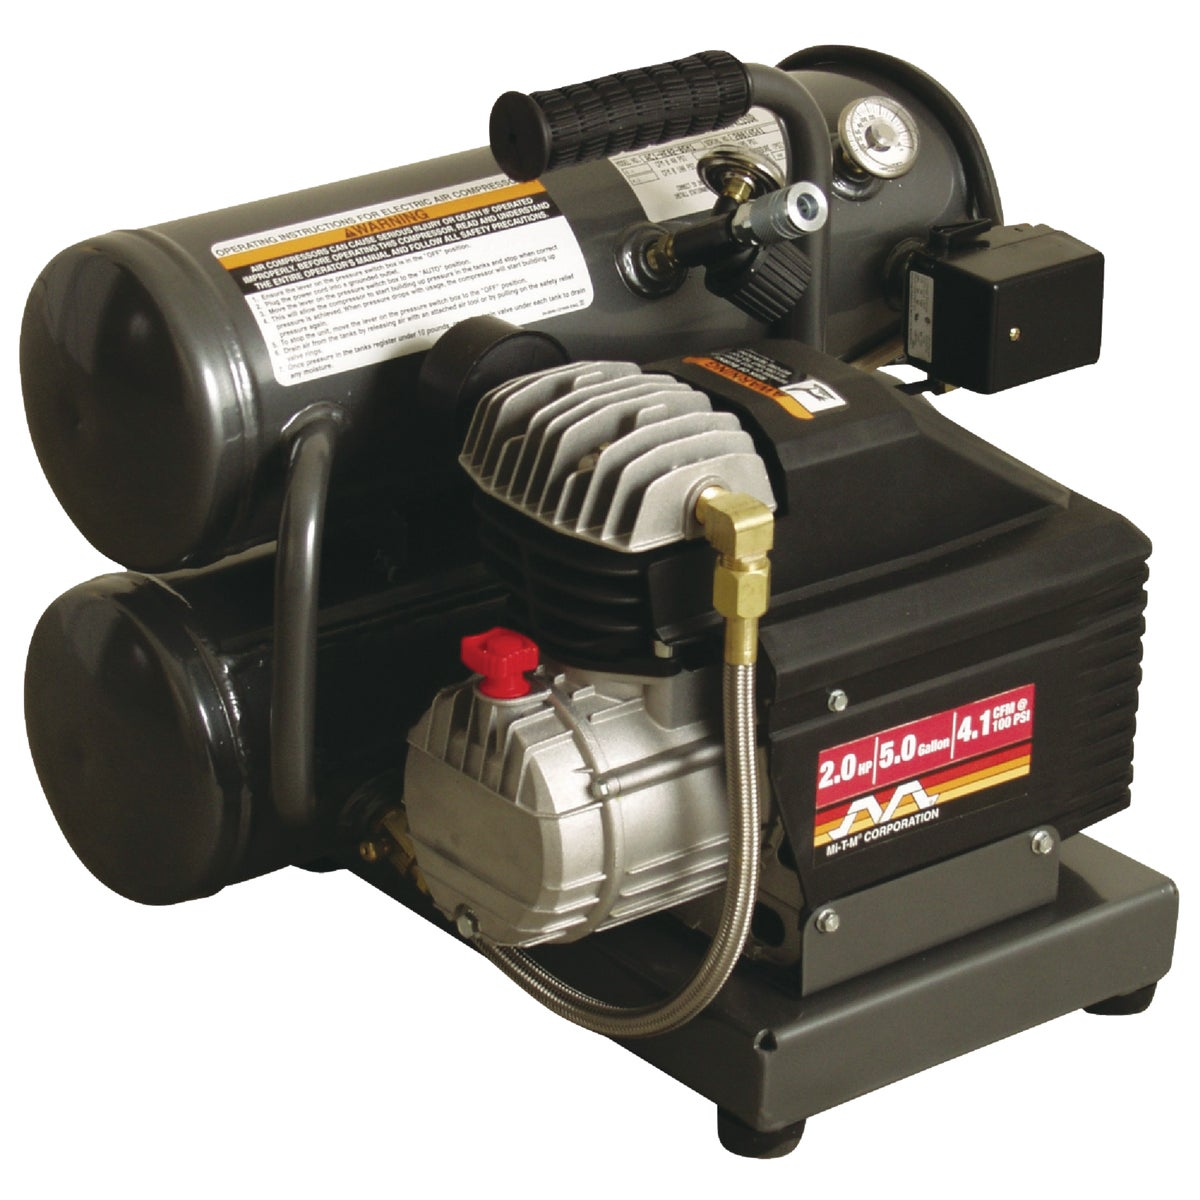 2HP ELEC AIR COMPRESSOR - AC1-HE02-05M1 by Mi T M Corp